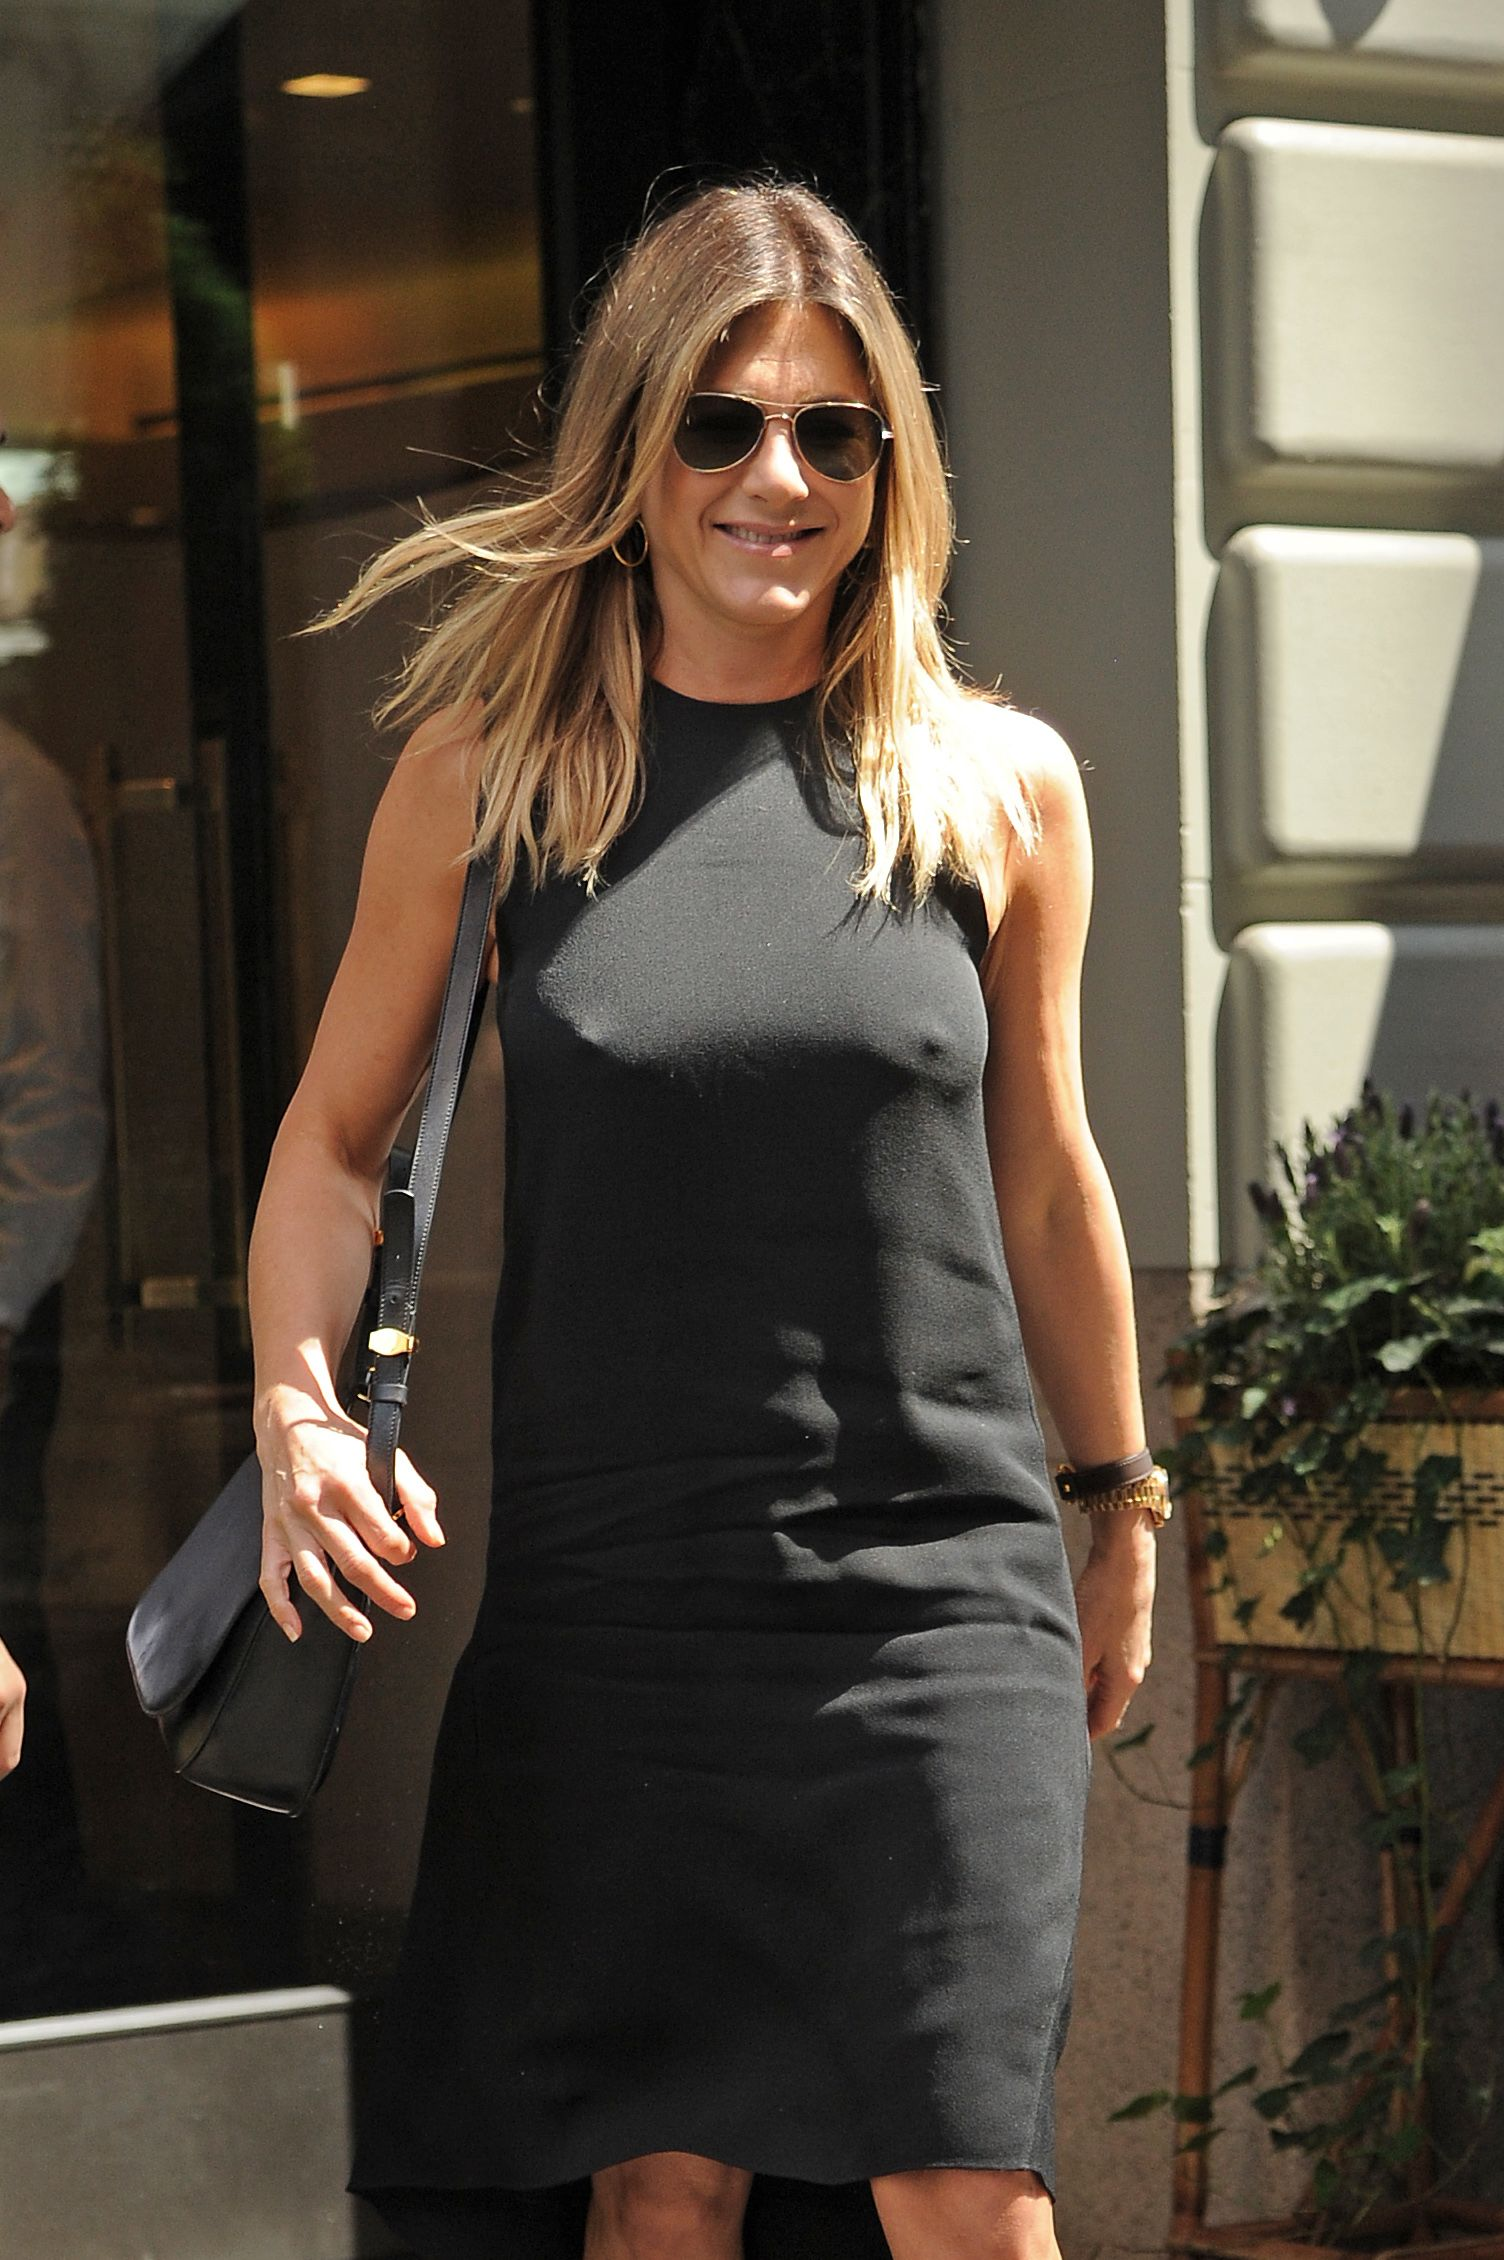 Jennifer-Aniston-Pokies-1 (1)